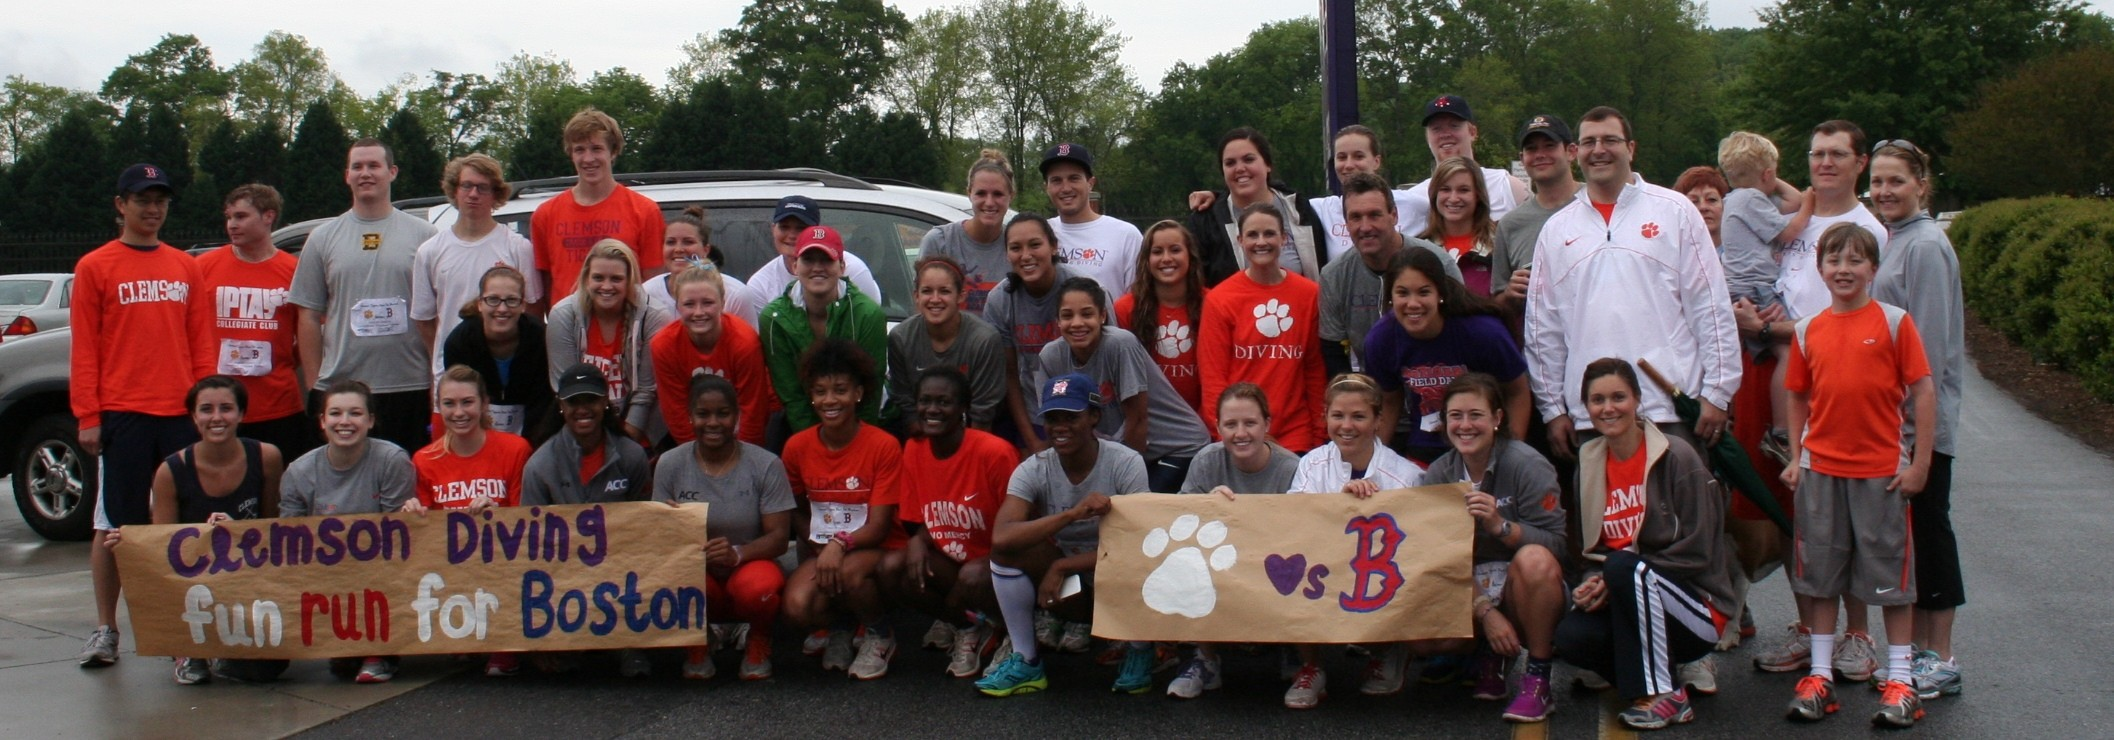 Diving Holds Charitable Event to Benefit Boston